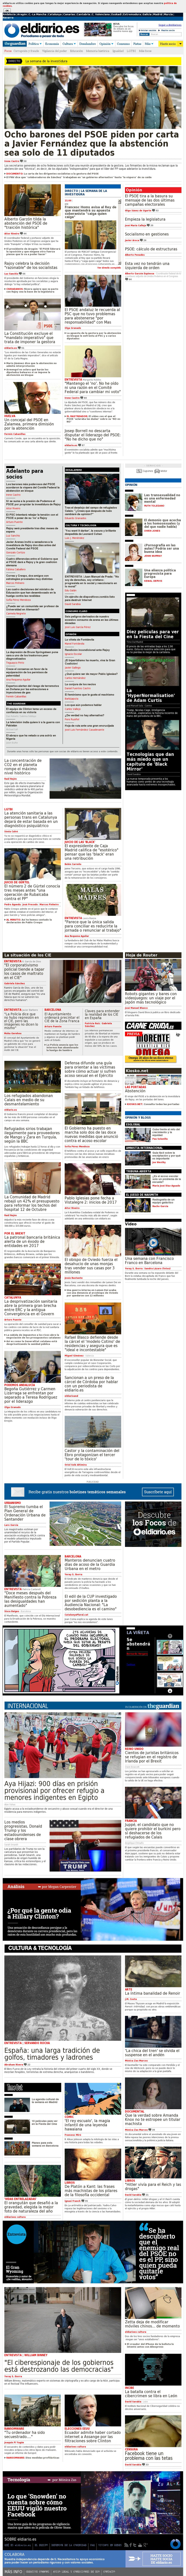 El Diario at Monday Oct. 24, 2016, 8:03 p.m. UTC